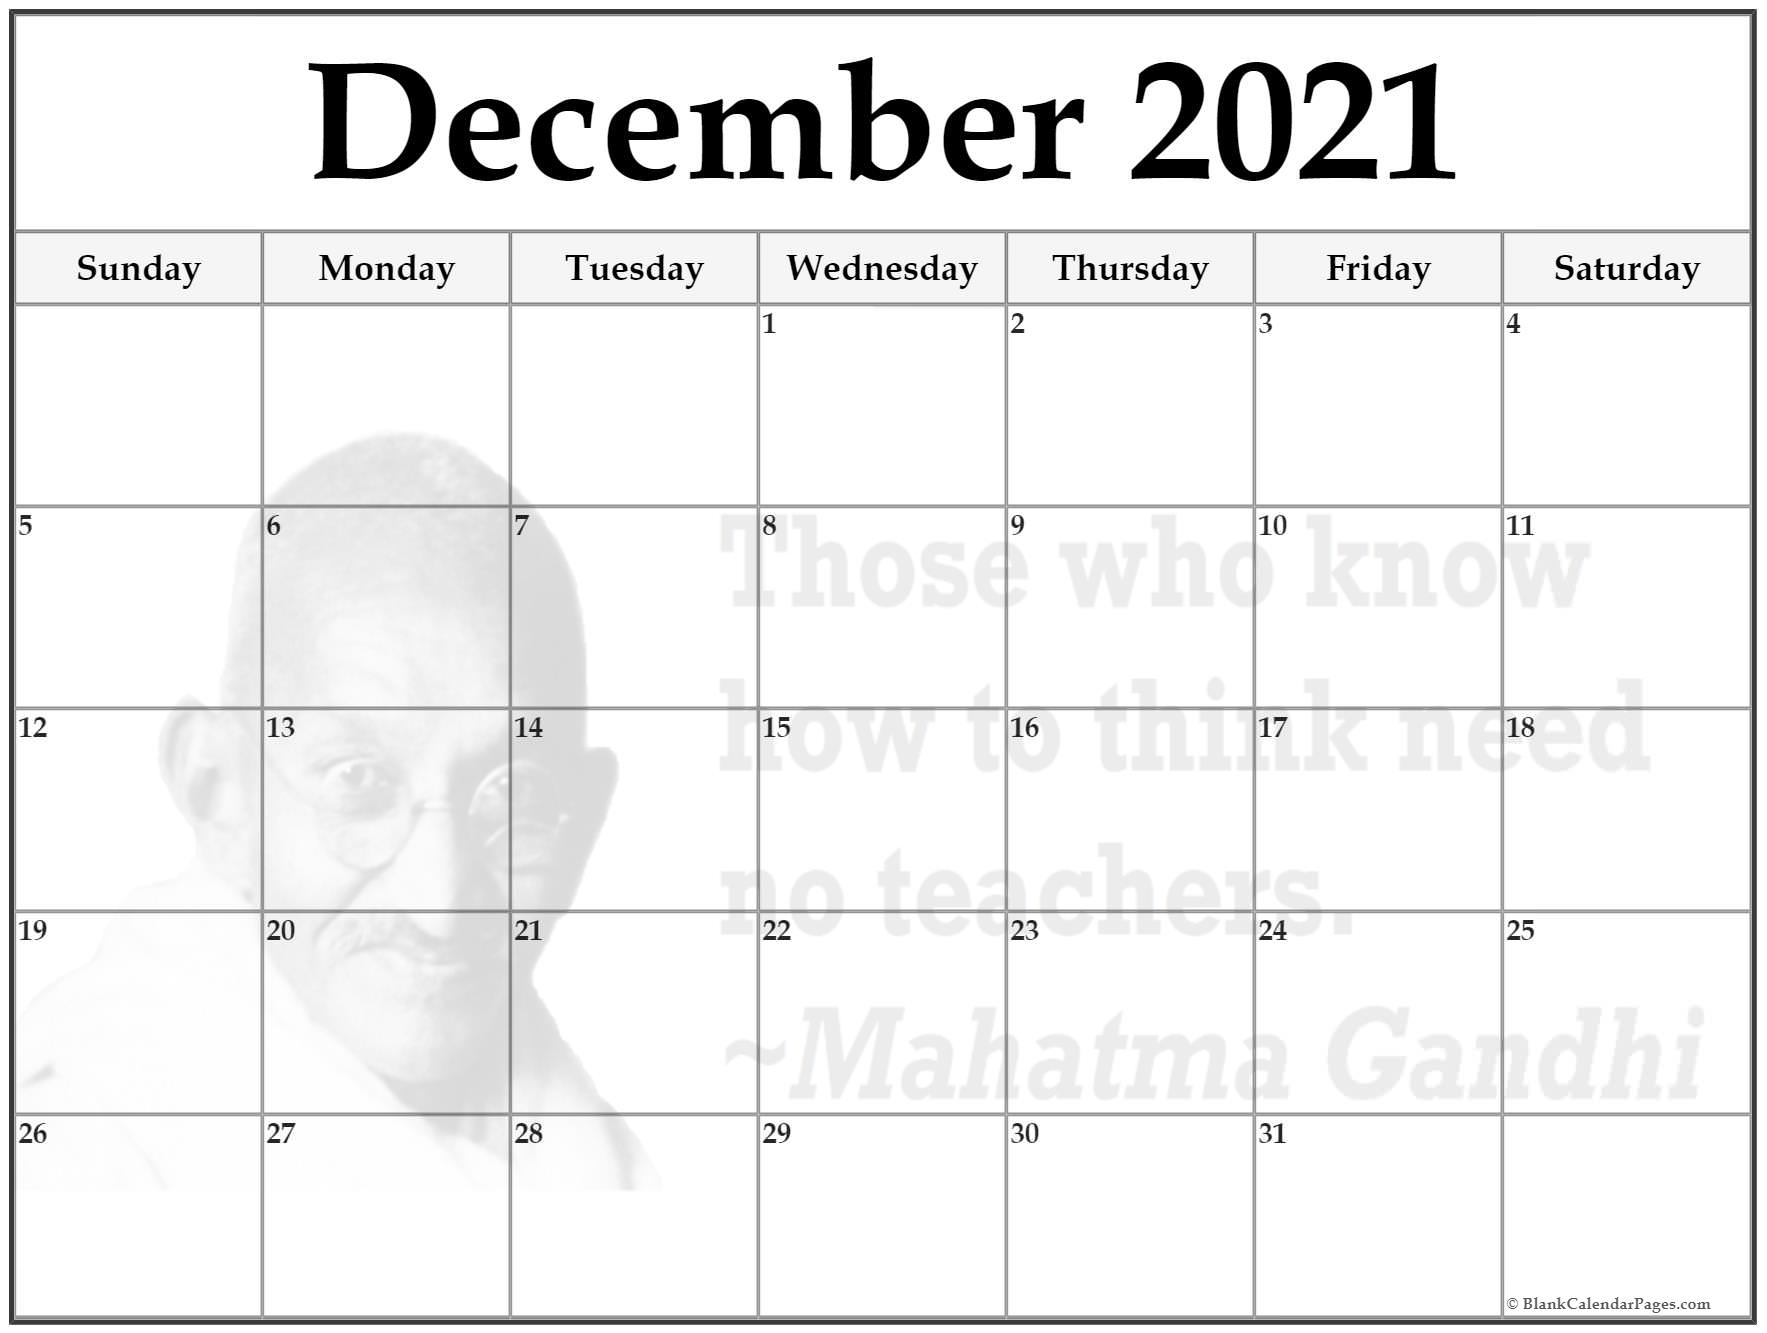 December 2021 monthly calendar template. Those who know how to think need no teachers. ~Mahatma Gandhi